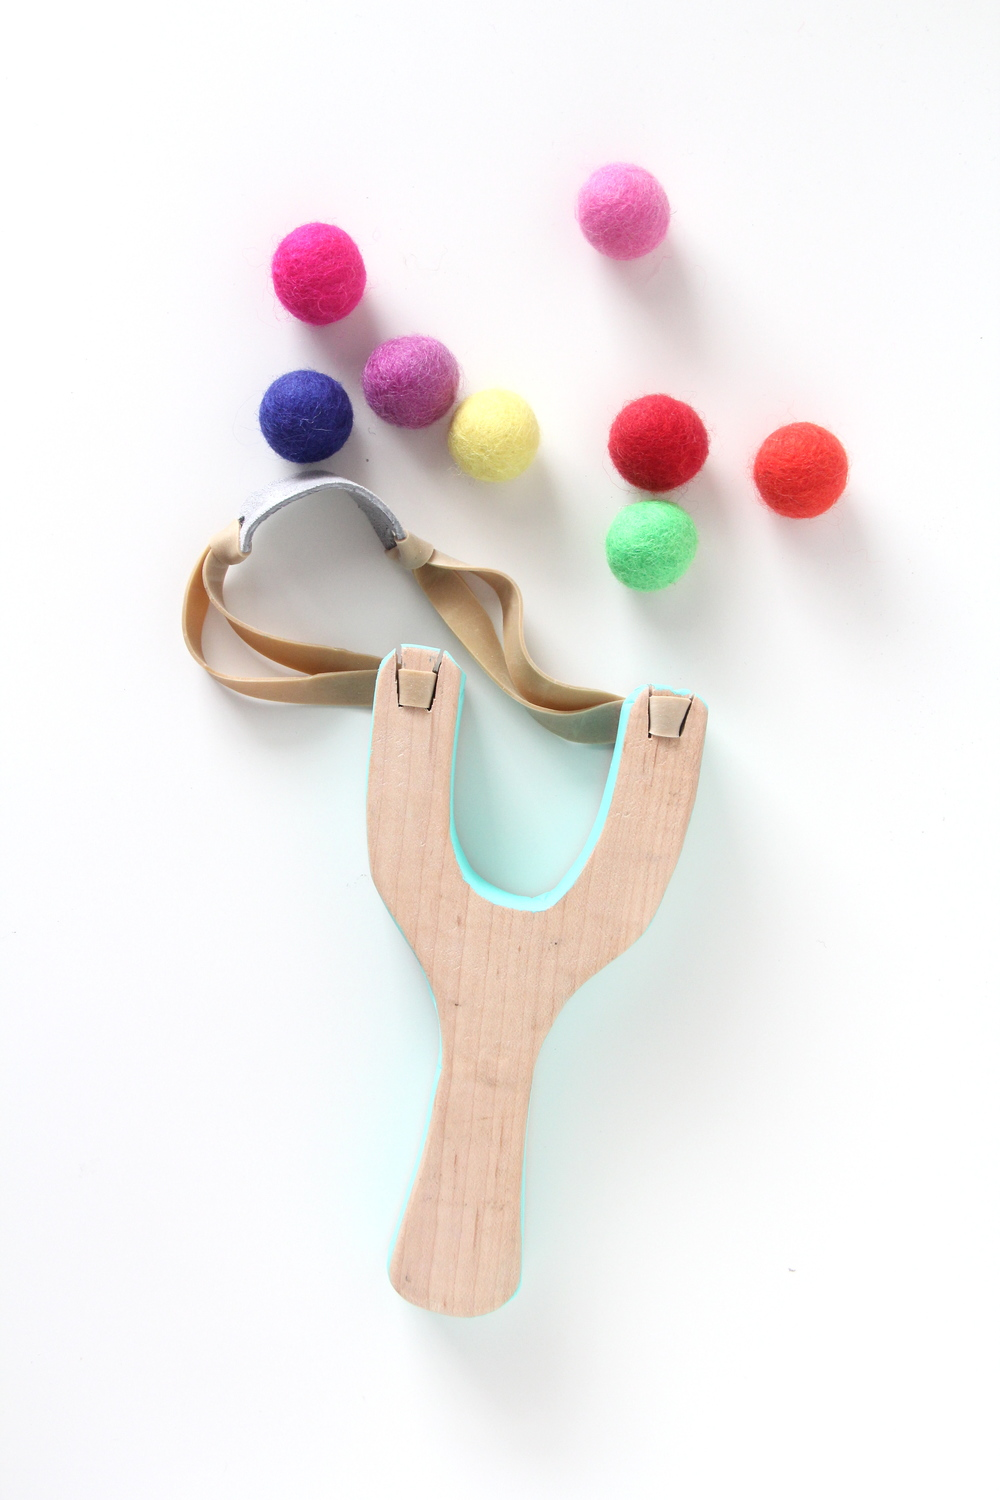 Slingshot with felt ball ammo and we play diy for kids